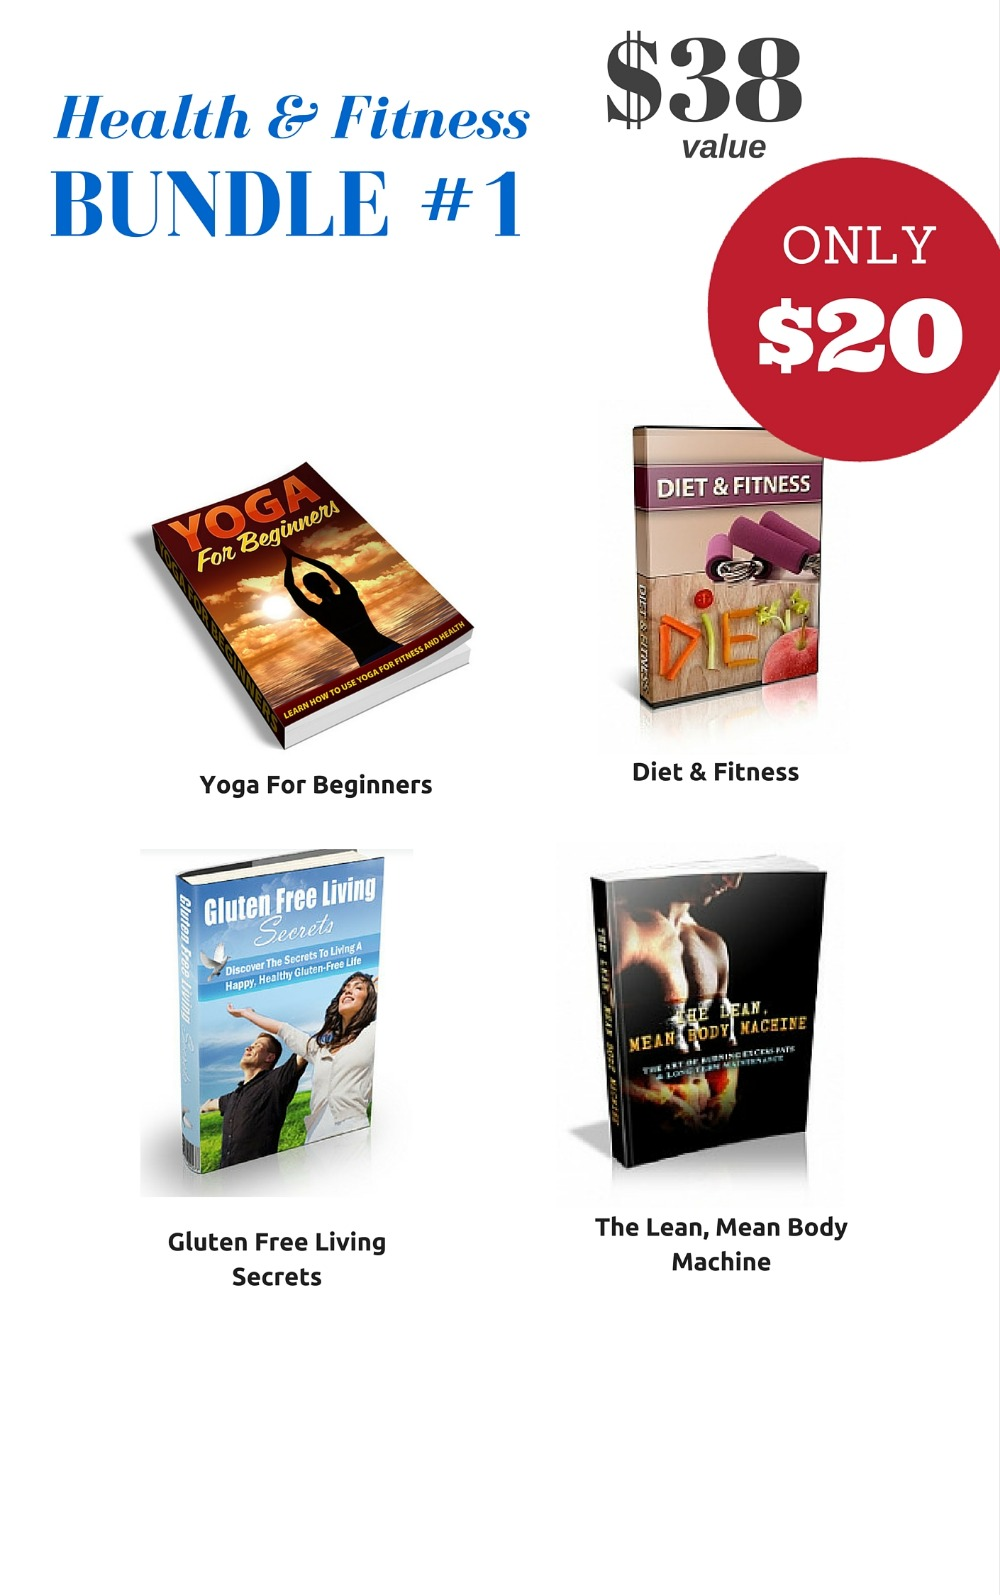 Health & Fitness Bundle #1 - $38 VALUE FOR ONLY $20